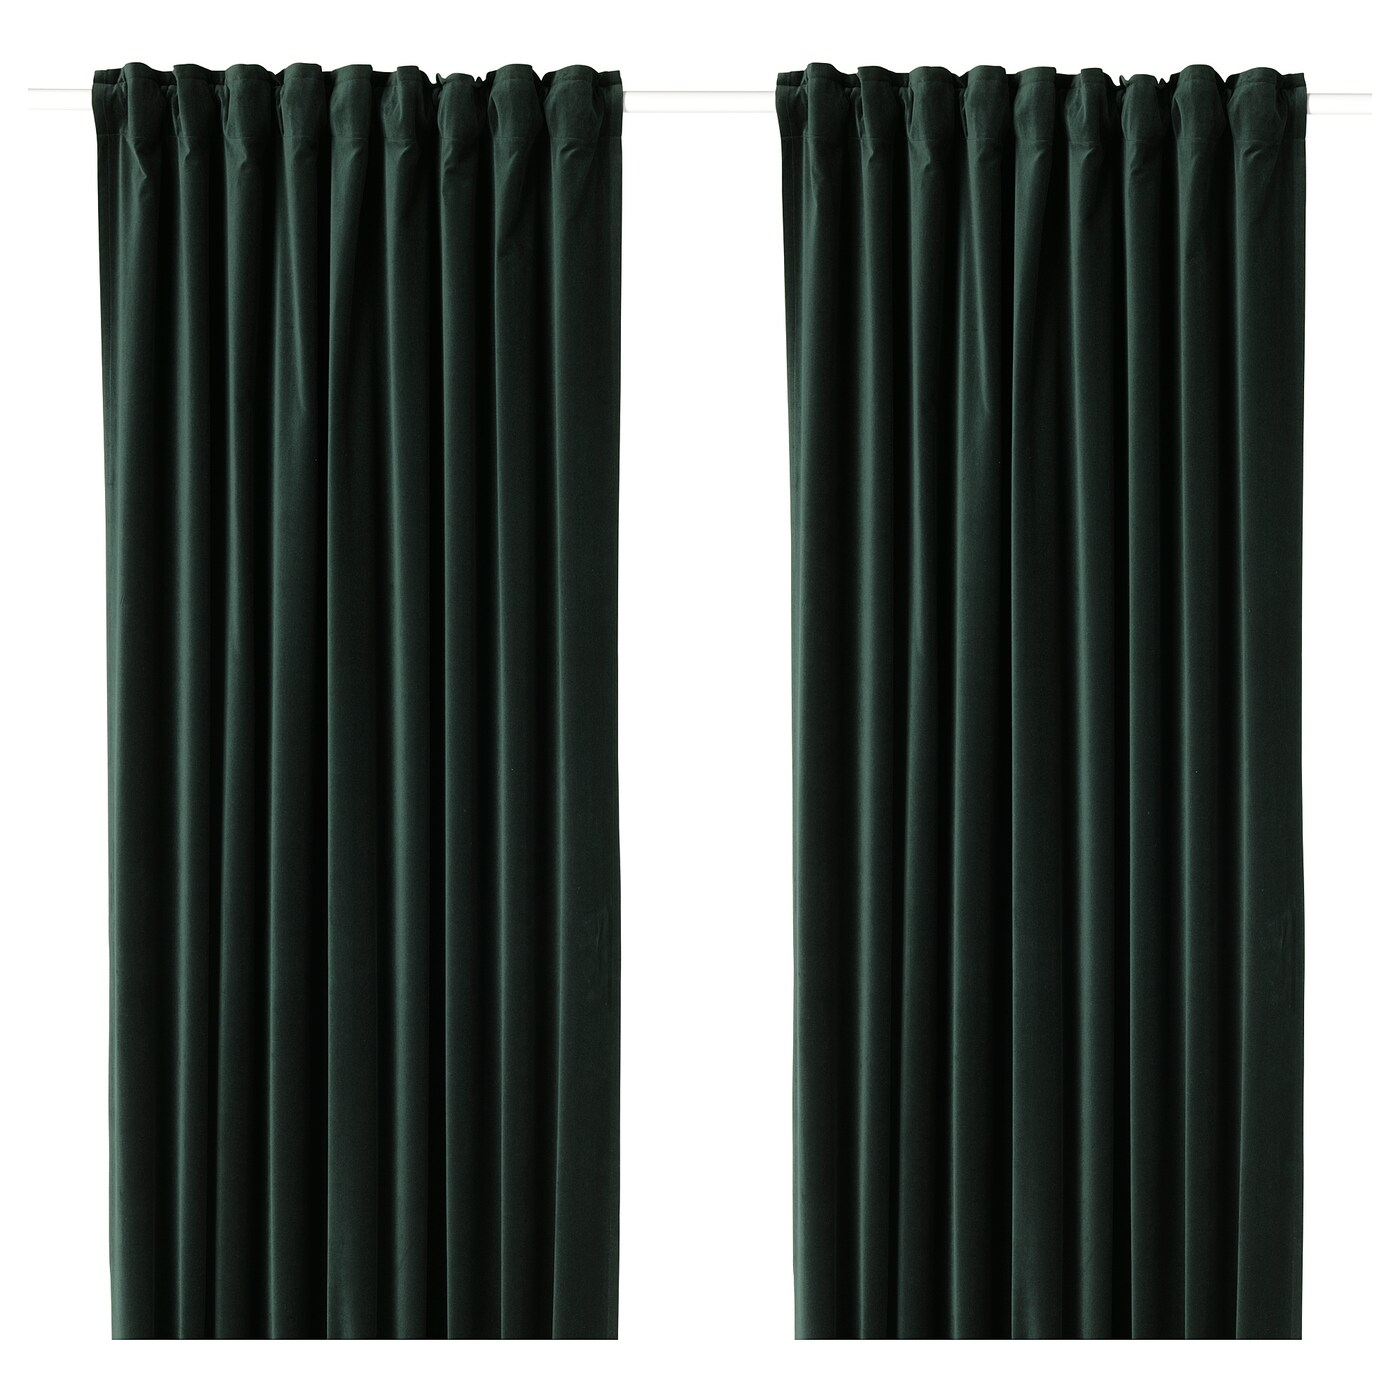 Ikea Perth Curtains Sanela Room Darkening Curtains 1 Pair Dark Green